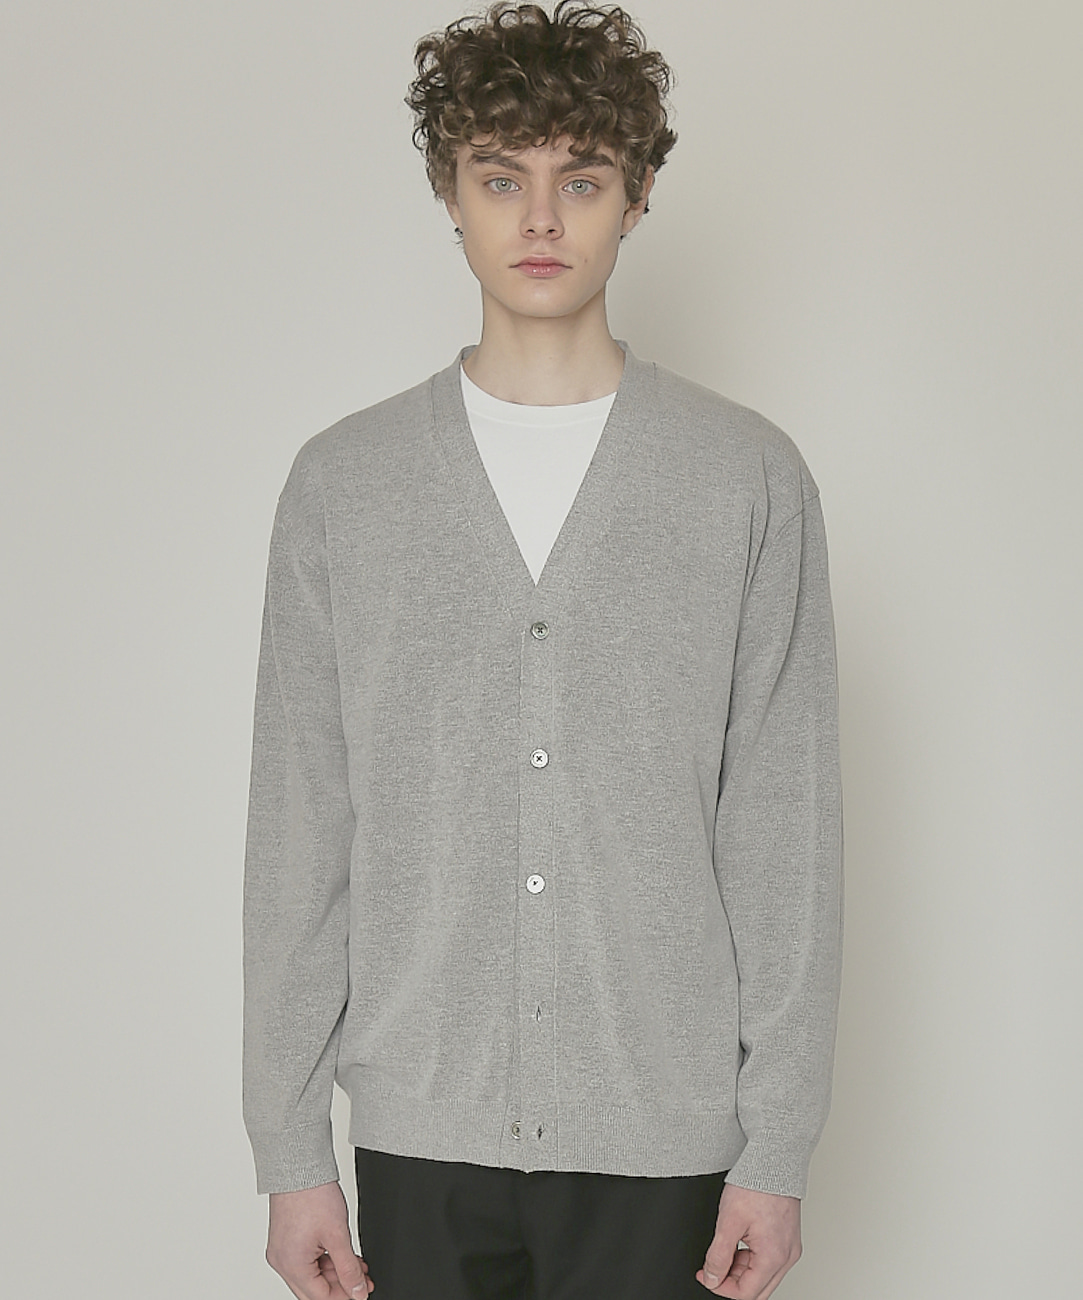 DWS SOFT BASIC CARDIGAN(GREY)